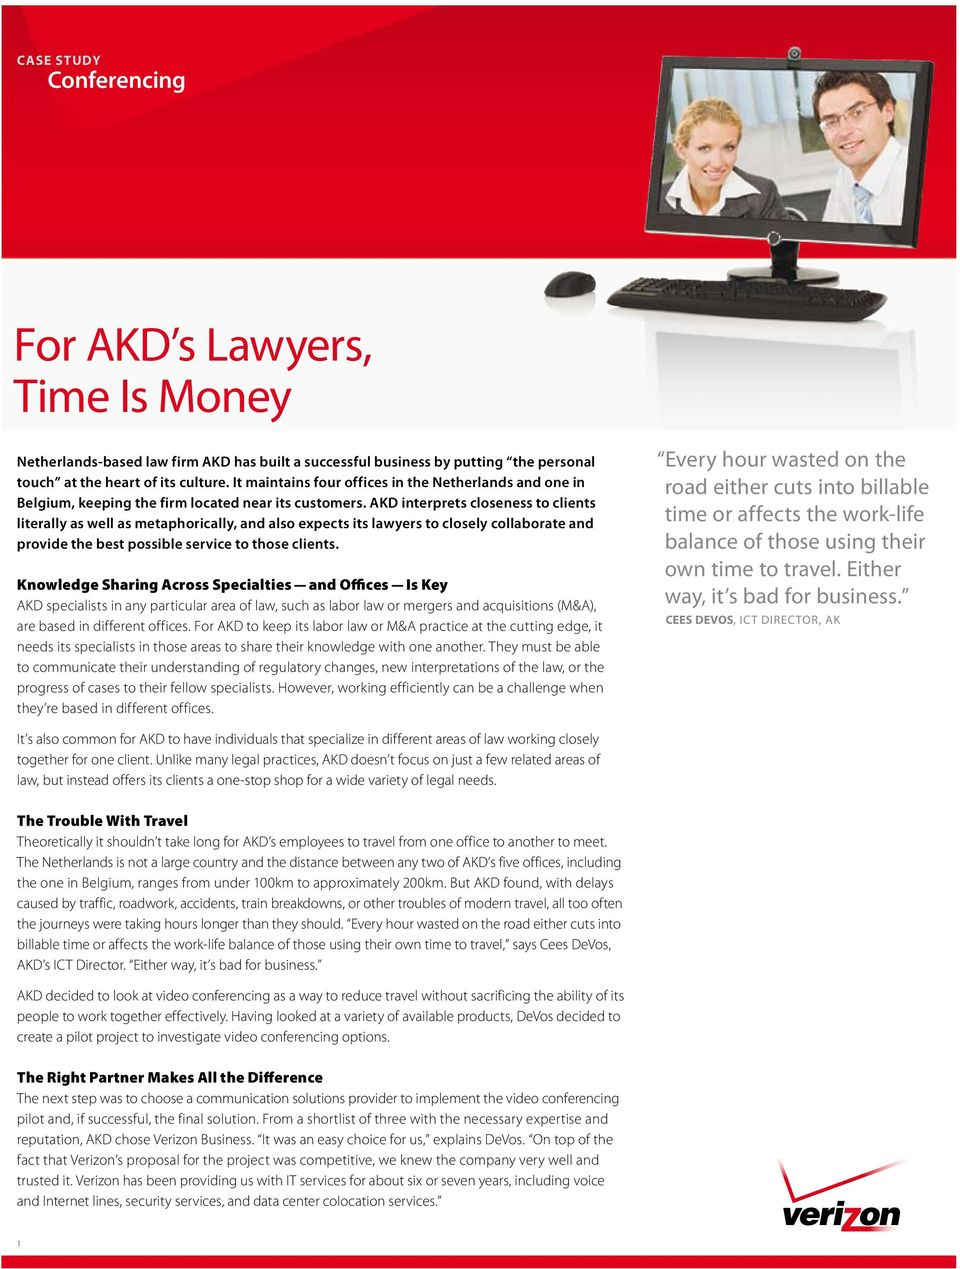 AKD interprets closeness to clients literally as well as metaphorically, and also expects its lawyers to closely collaborate and provide the best possible service to those clients.